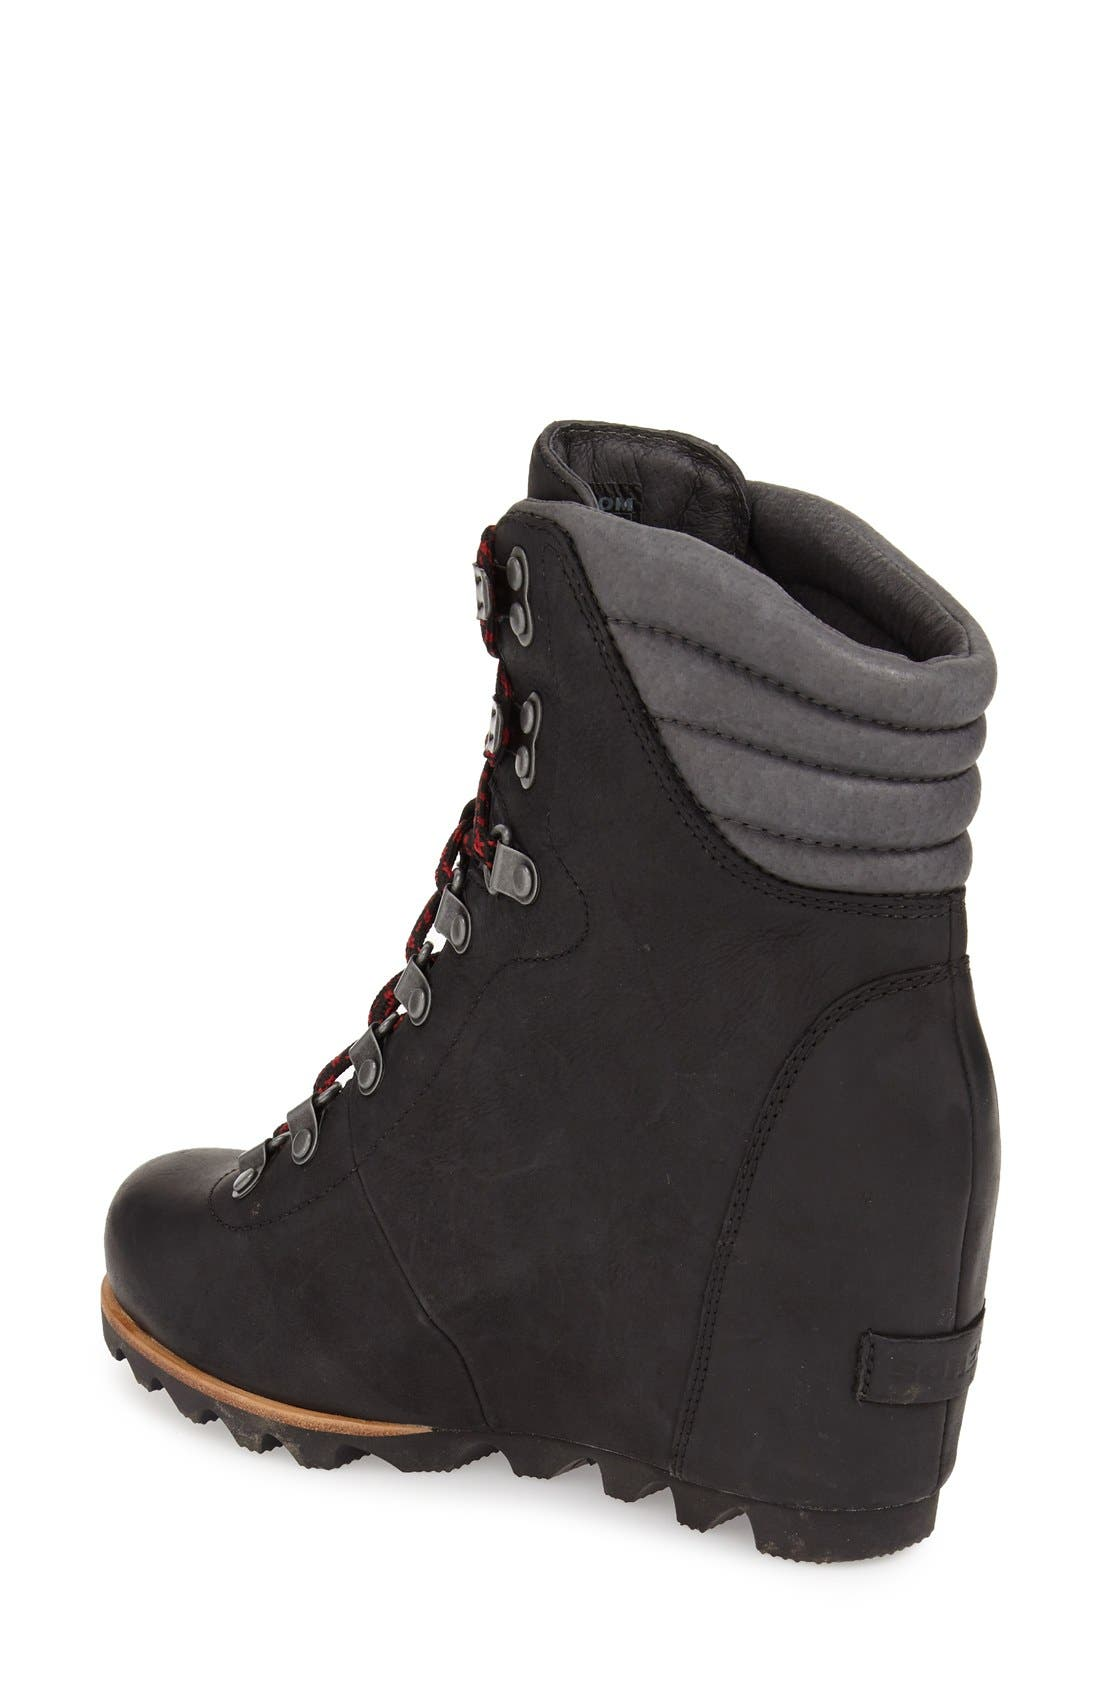 'Conquest' Waterproof Wedge Boot,                             Alternate thumbnail 11, color,